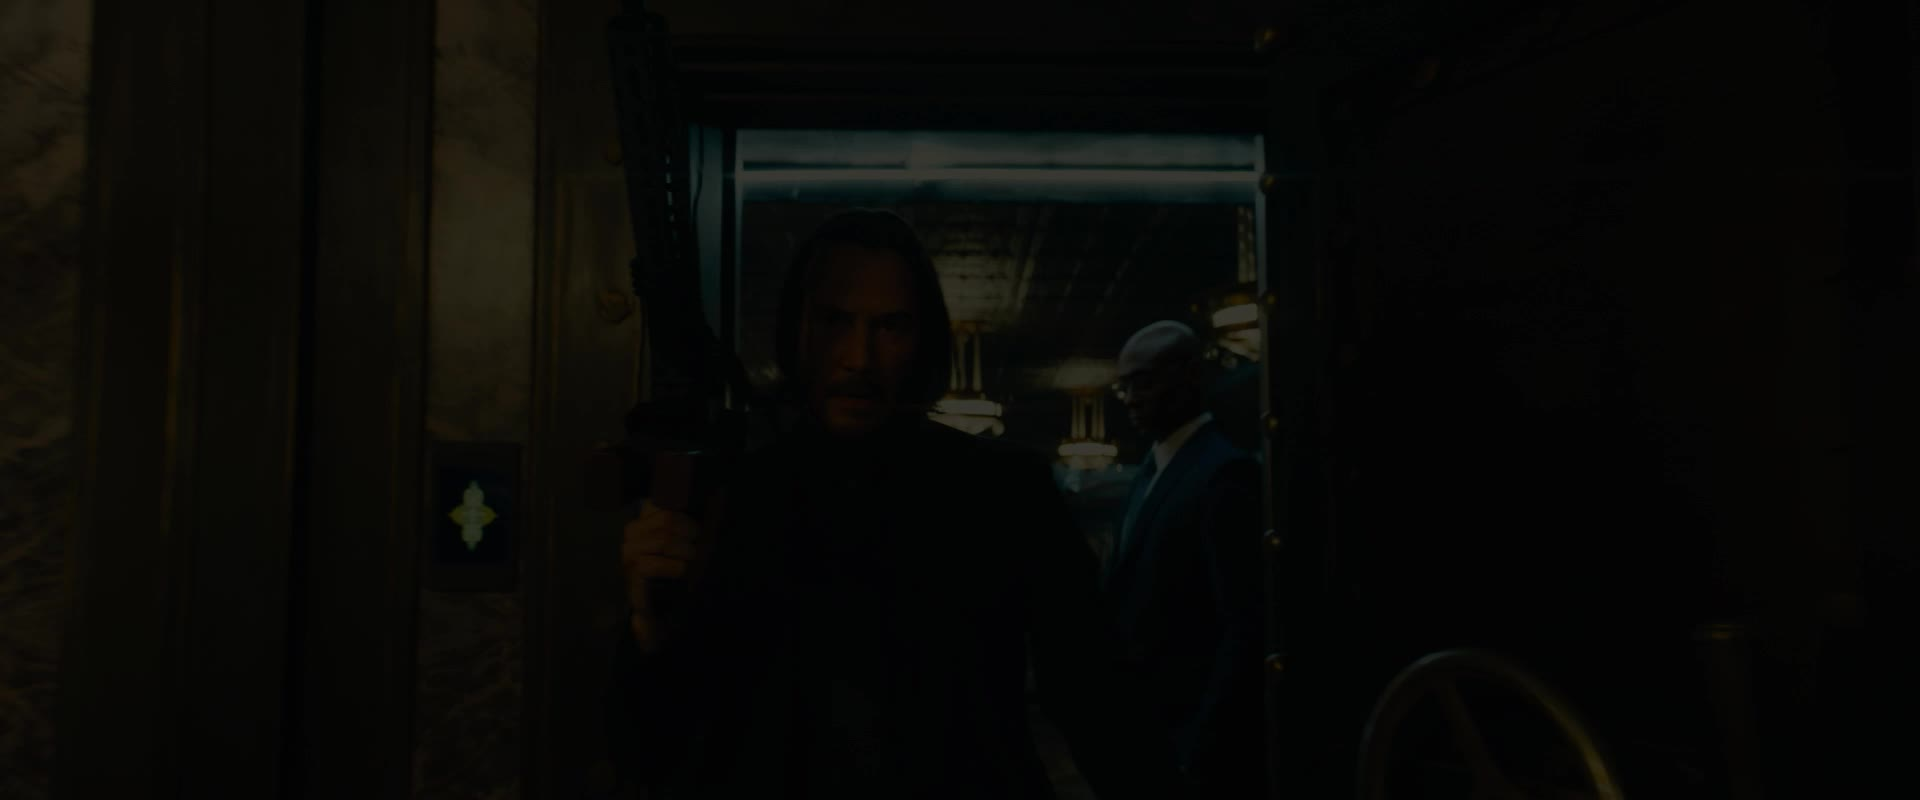 battle, gun, john wick, john wick 3, john wick chapter 3, john wick chapter 3 parabellum, keanu reeves, walking, John Wick Keanu Reeves Walking Into Battle GIFs